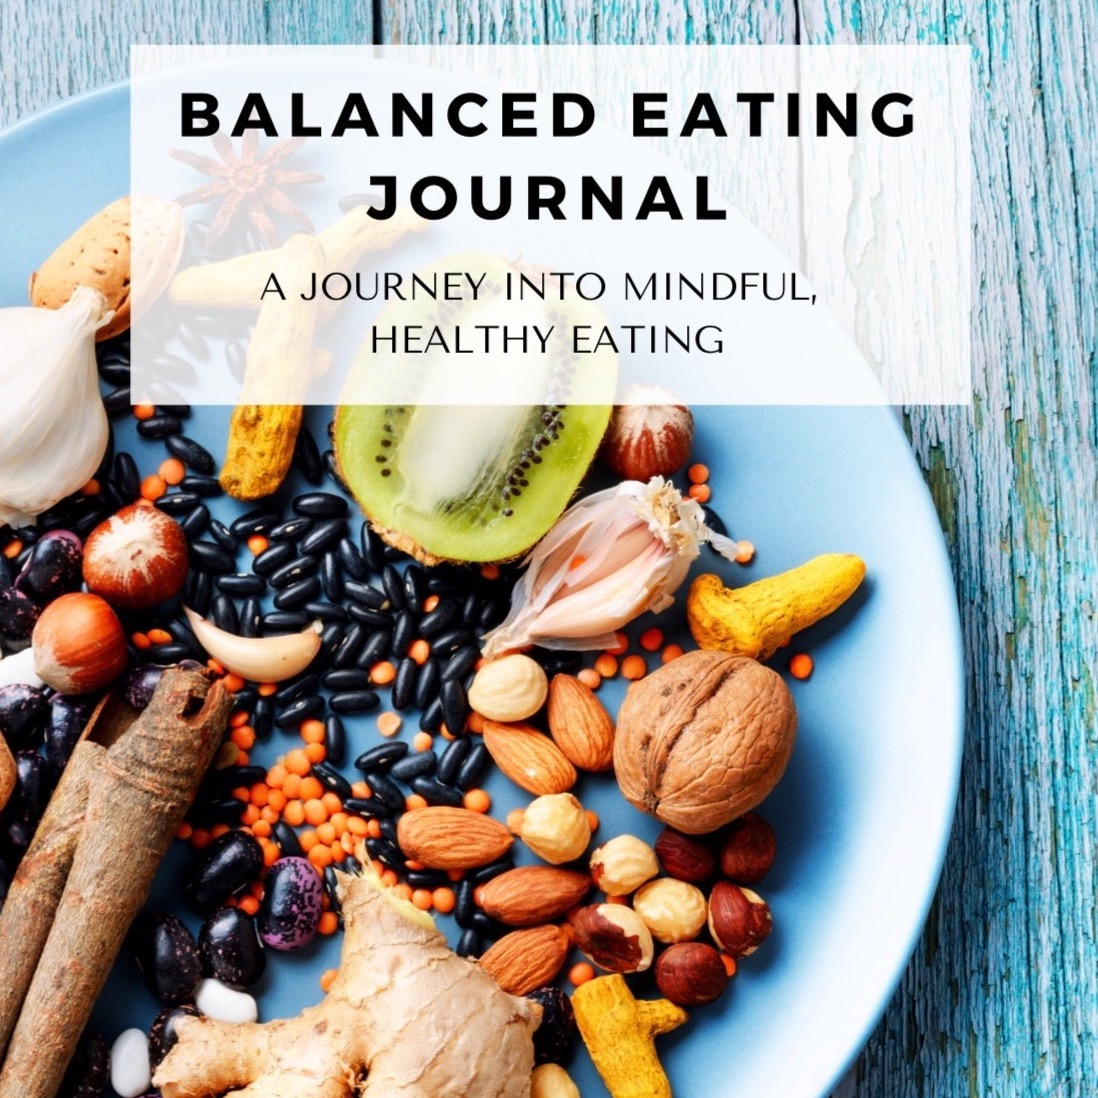 Weight loss and healthy eating journal.